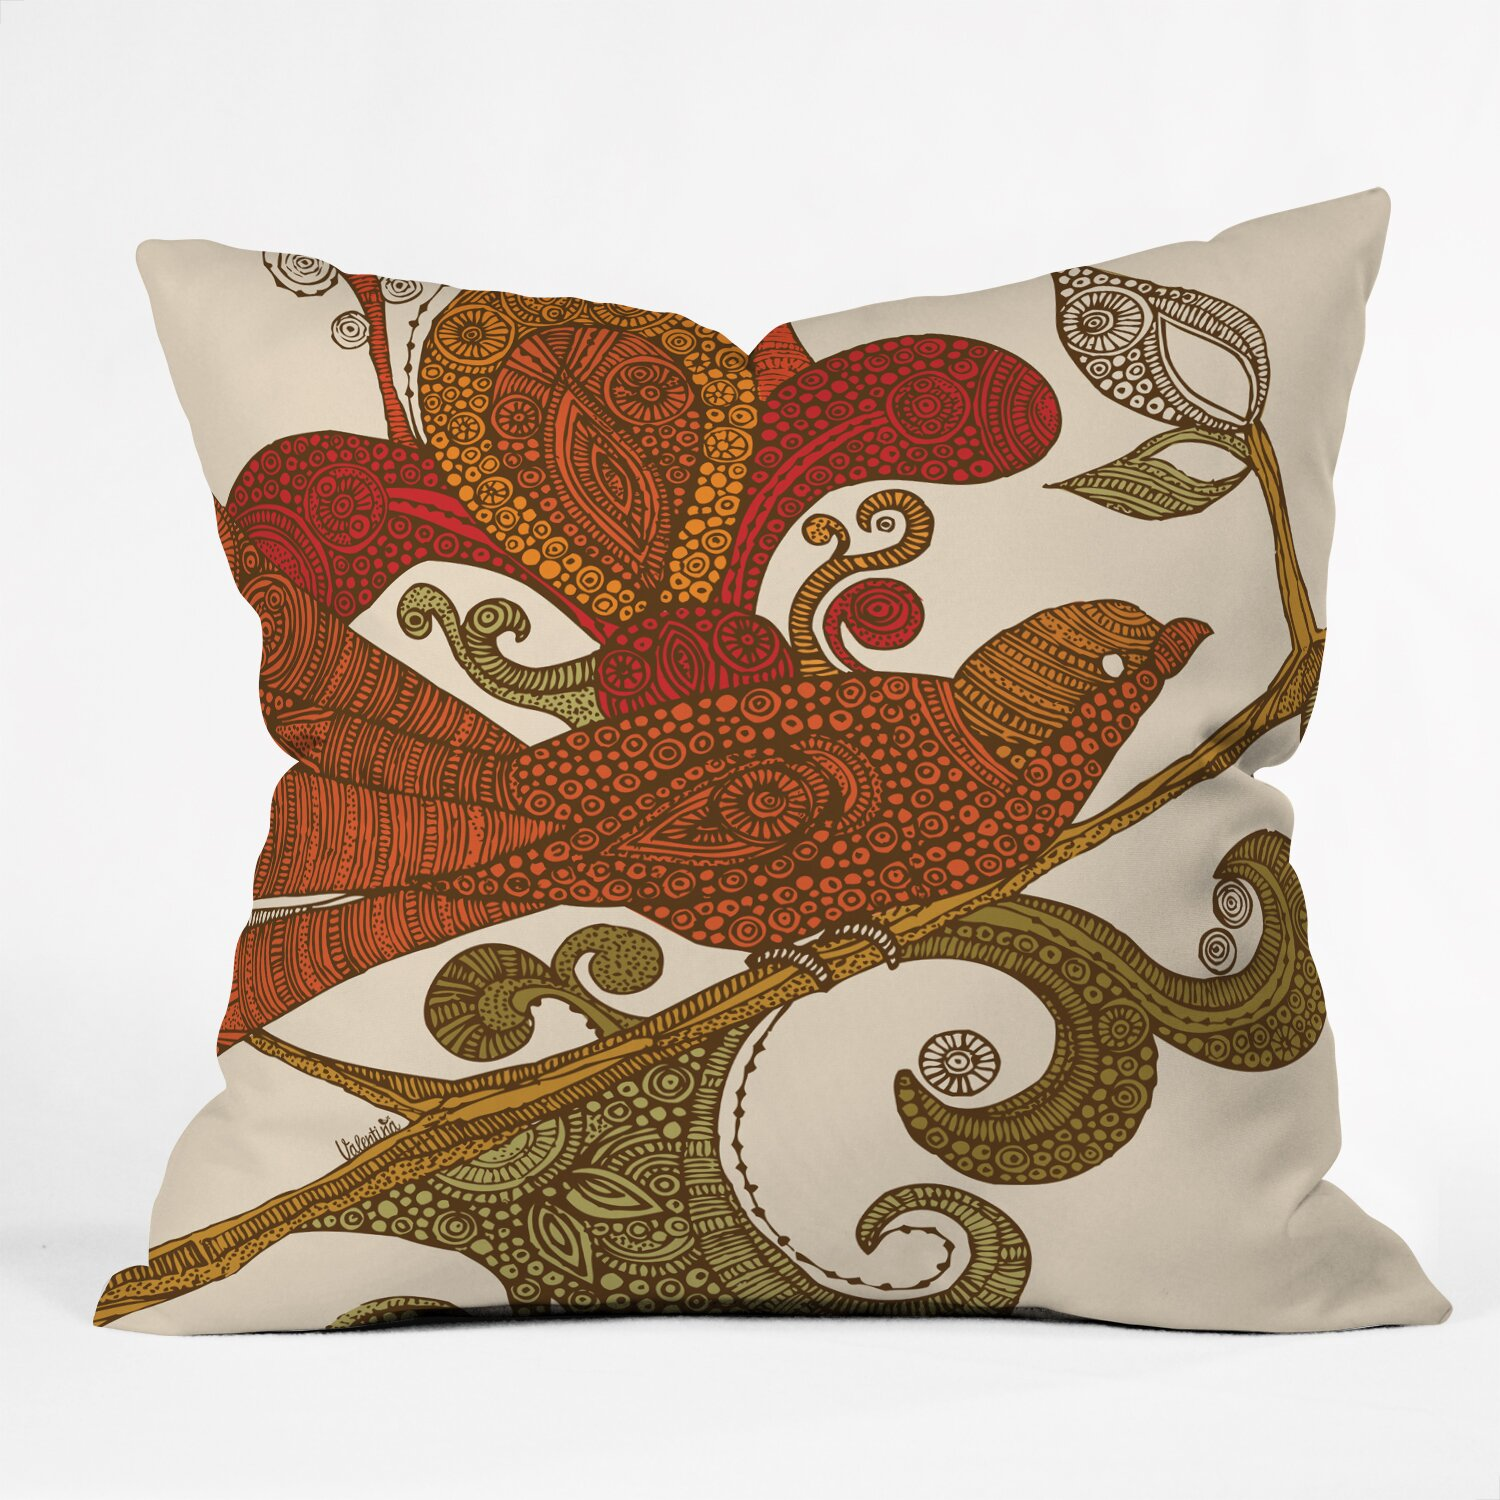 Decorative Pillows With Bird Design : DENY Designs Valentina Ramos the Bird Throw Pillow & Reviews Wayfair